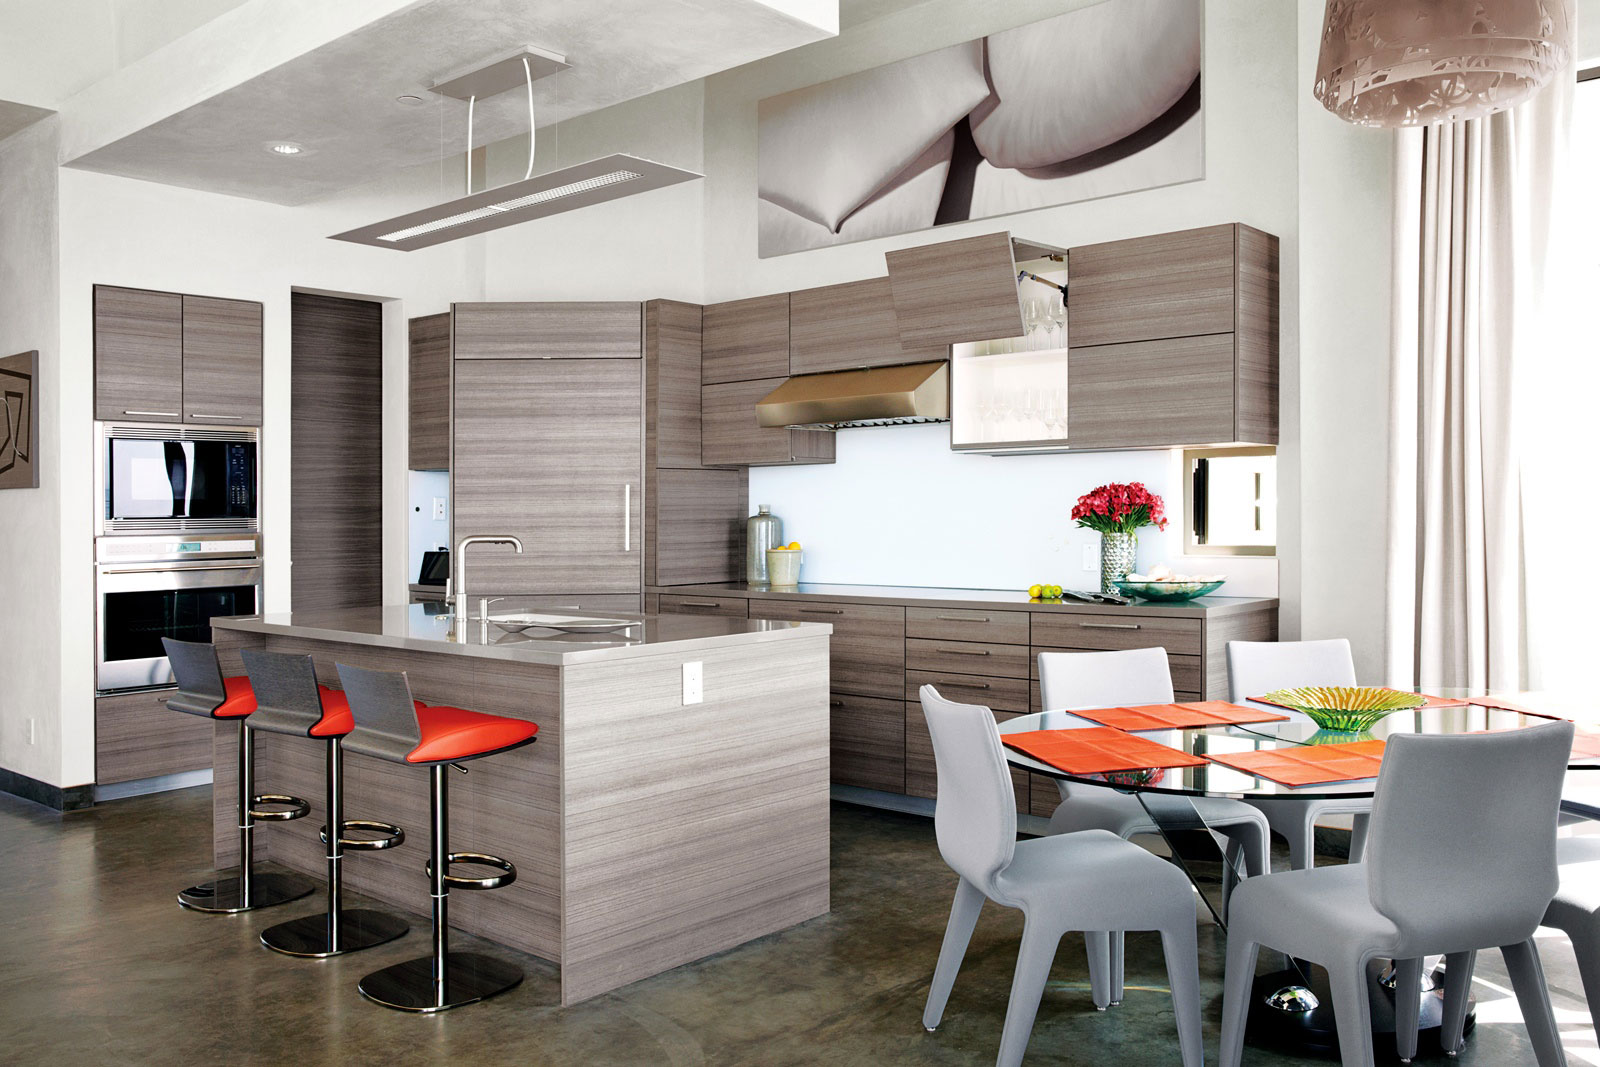 Eco friendly beach house in ventura county california for Decoration cuisine moderne 2014